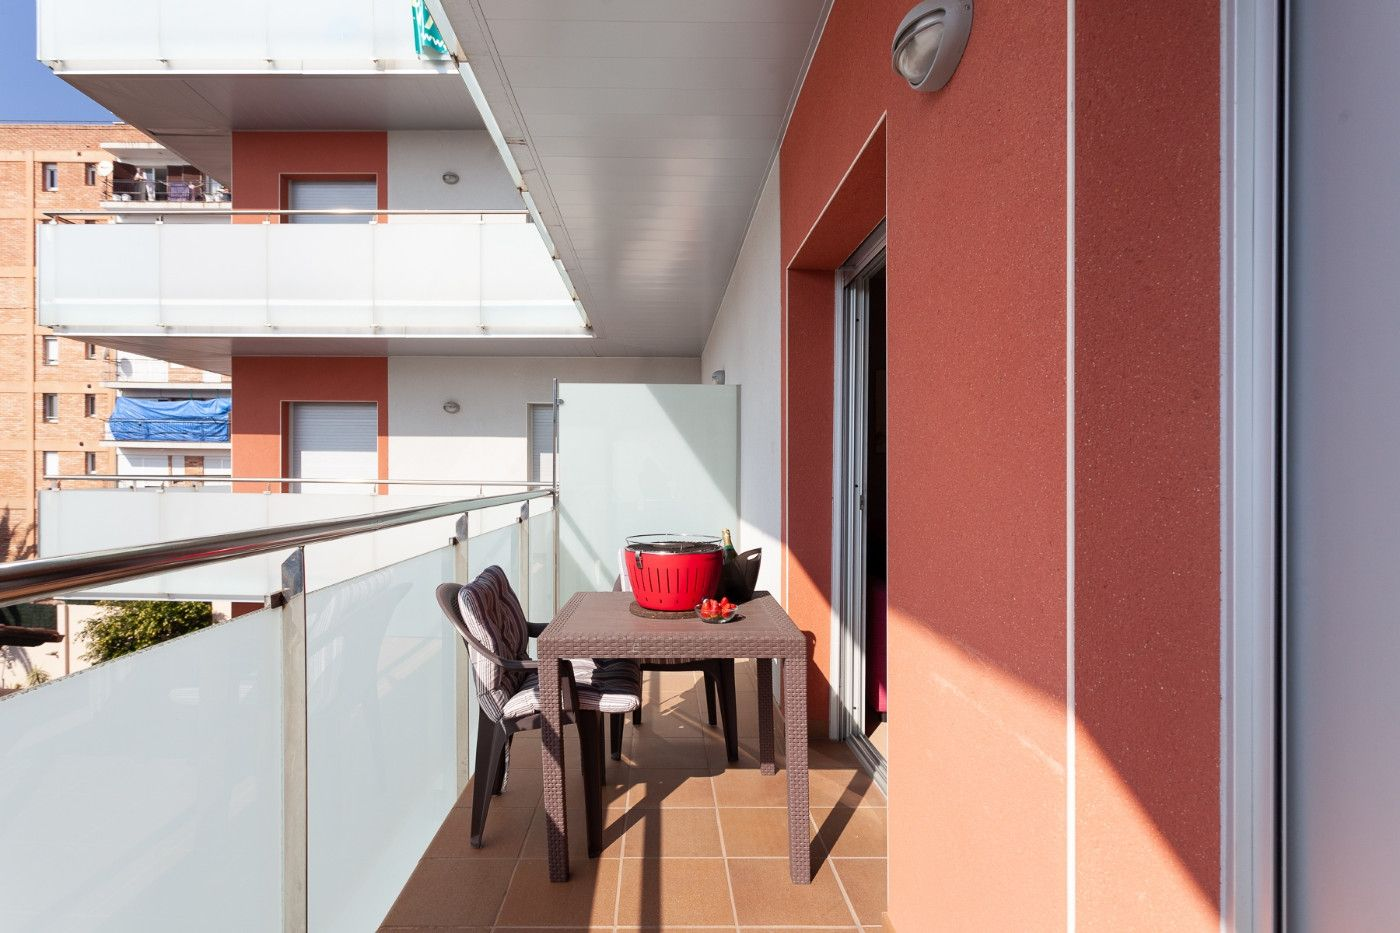 Holiday lettings Apartment in Carrer sant jordi, 7. Sea& beach lloret  apartments